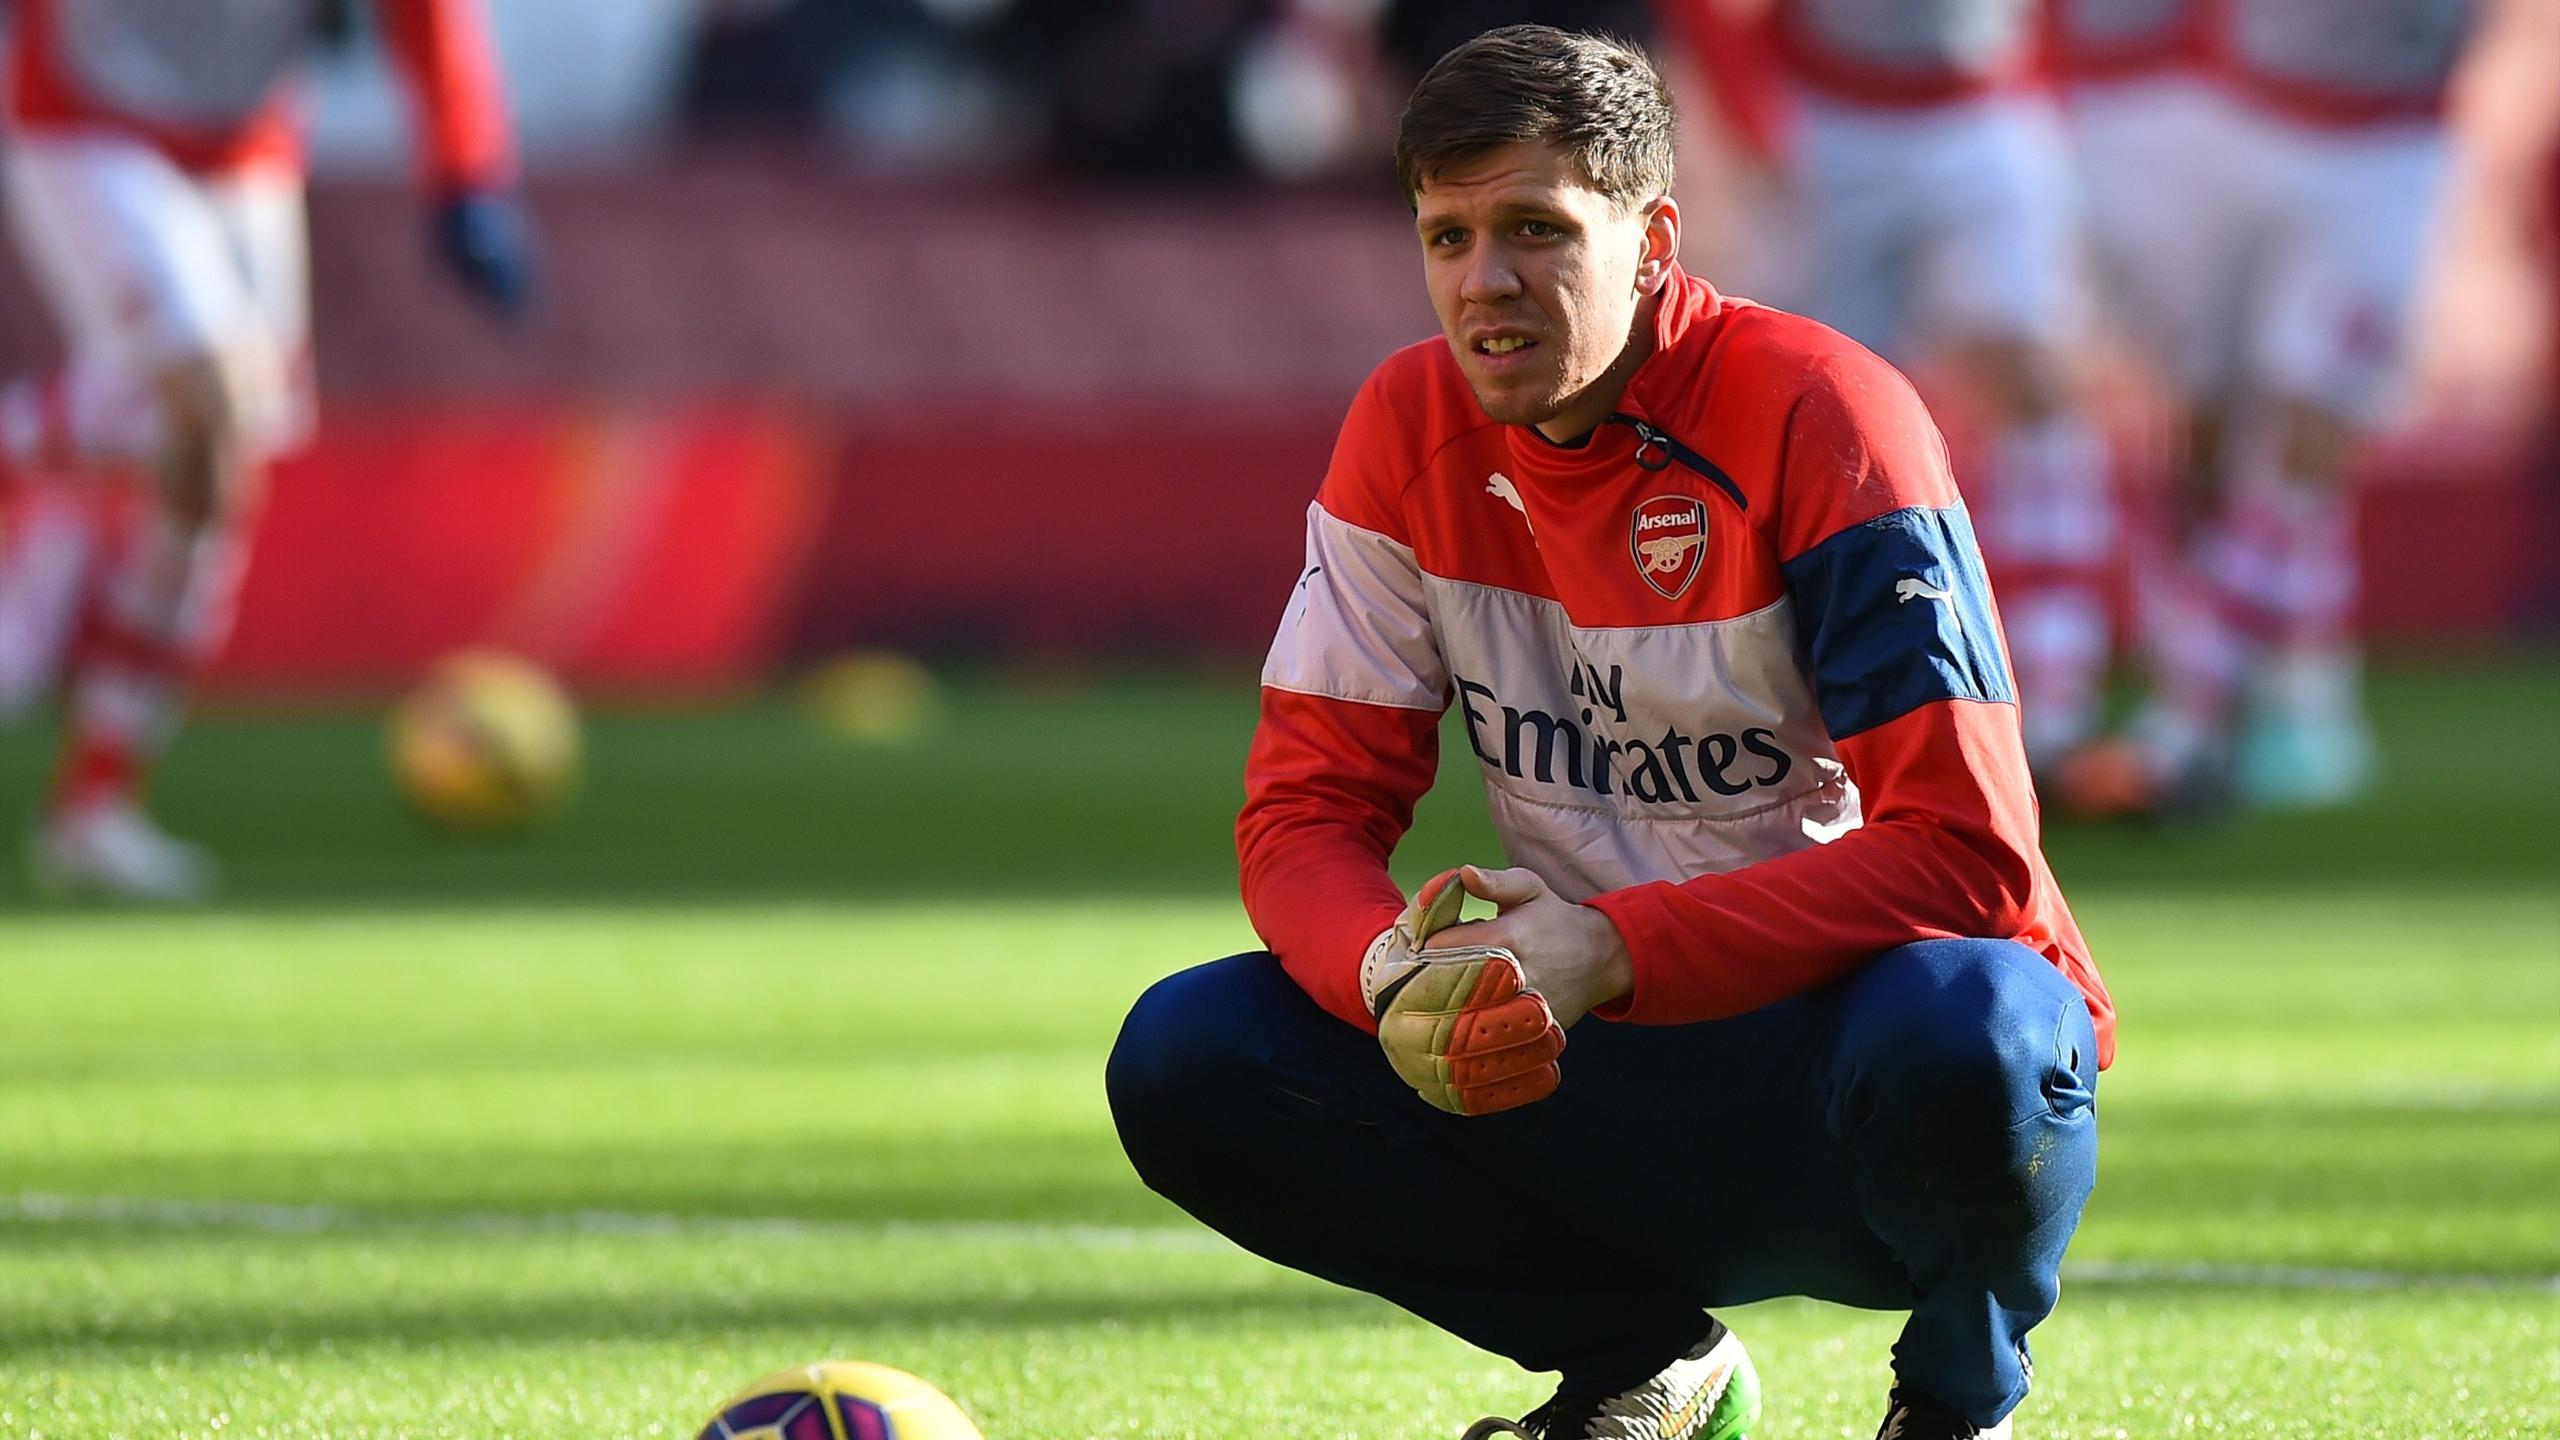 Arsenal's Polish goalkeeper Wojciech Szczesny takes a break during warm up ahead of the English Premier League football match between Arsenal and Stoke City